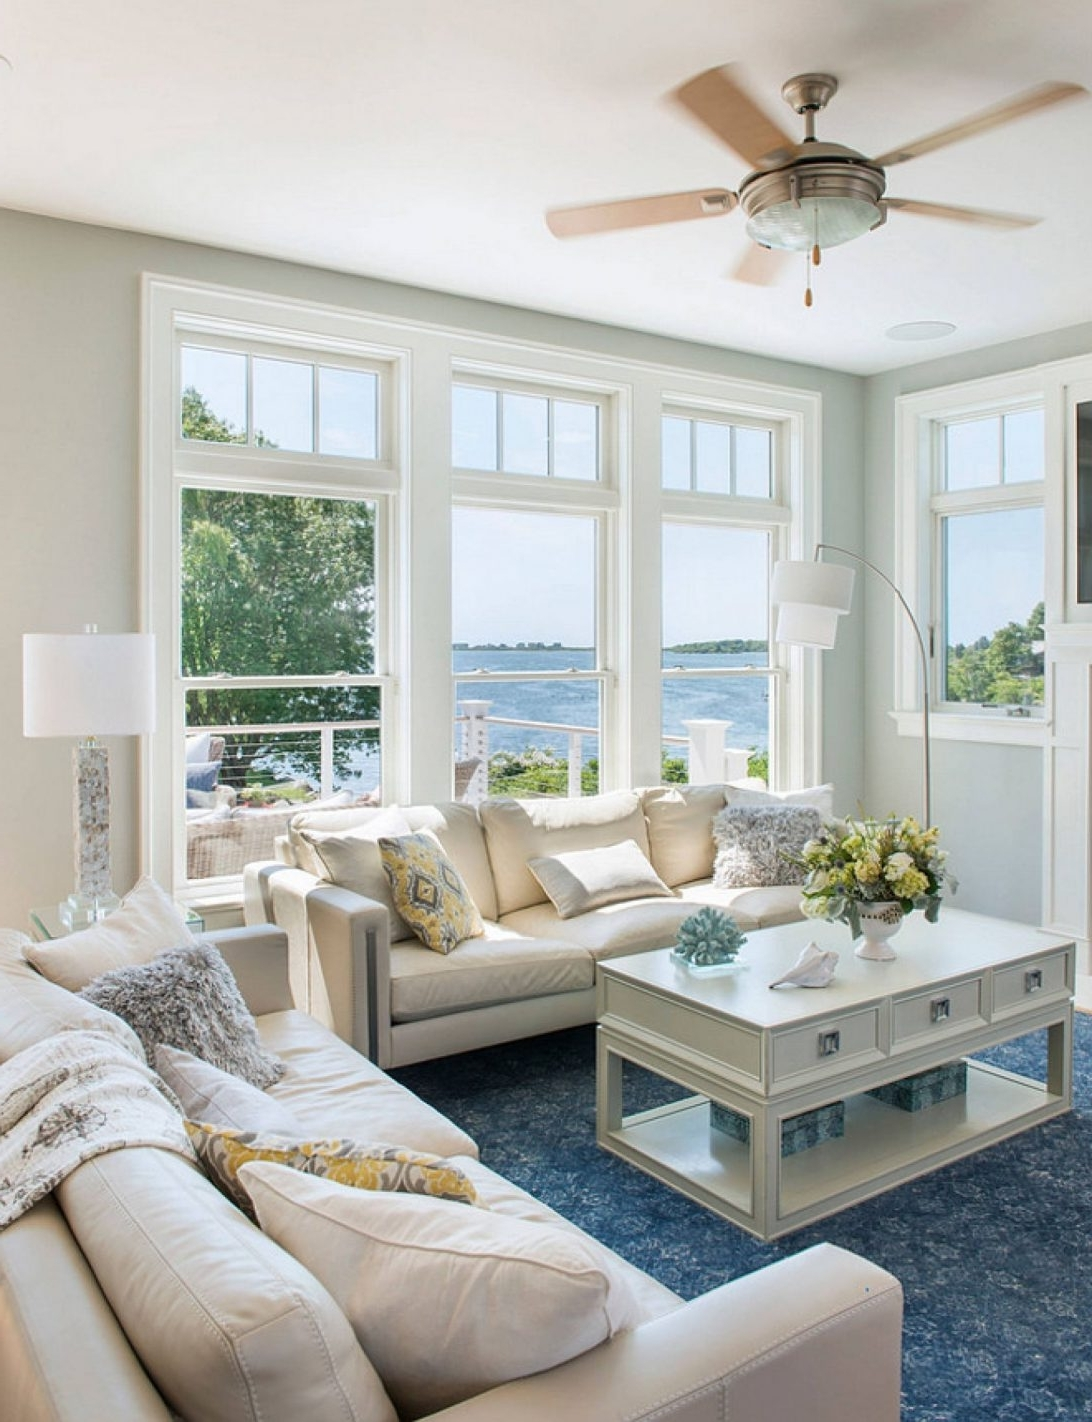 Beach Themed Floor Lamps Unique Nautical Coastal Living Room Ideas With Well Known Coastal Living Room Table Lamps (View 2 of 20)